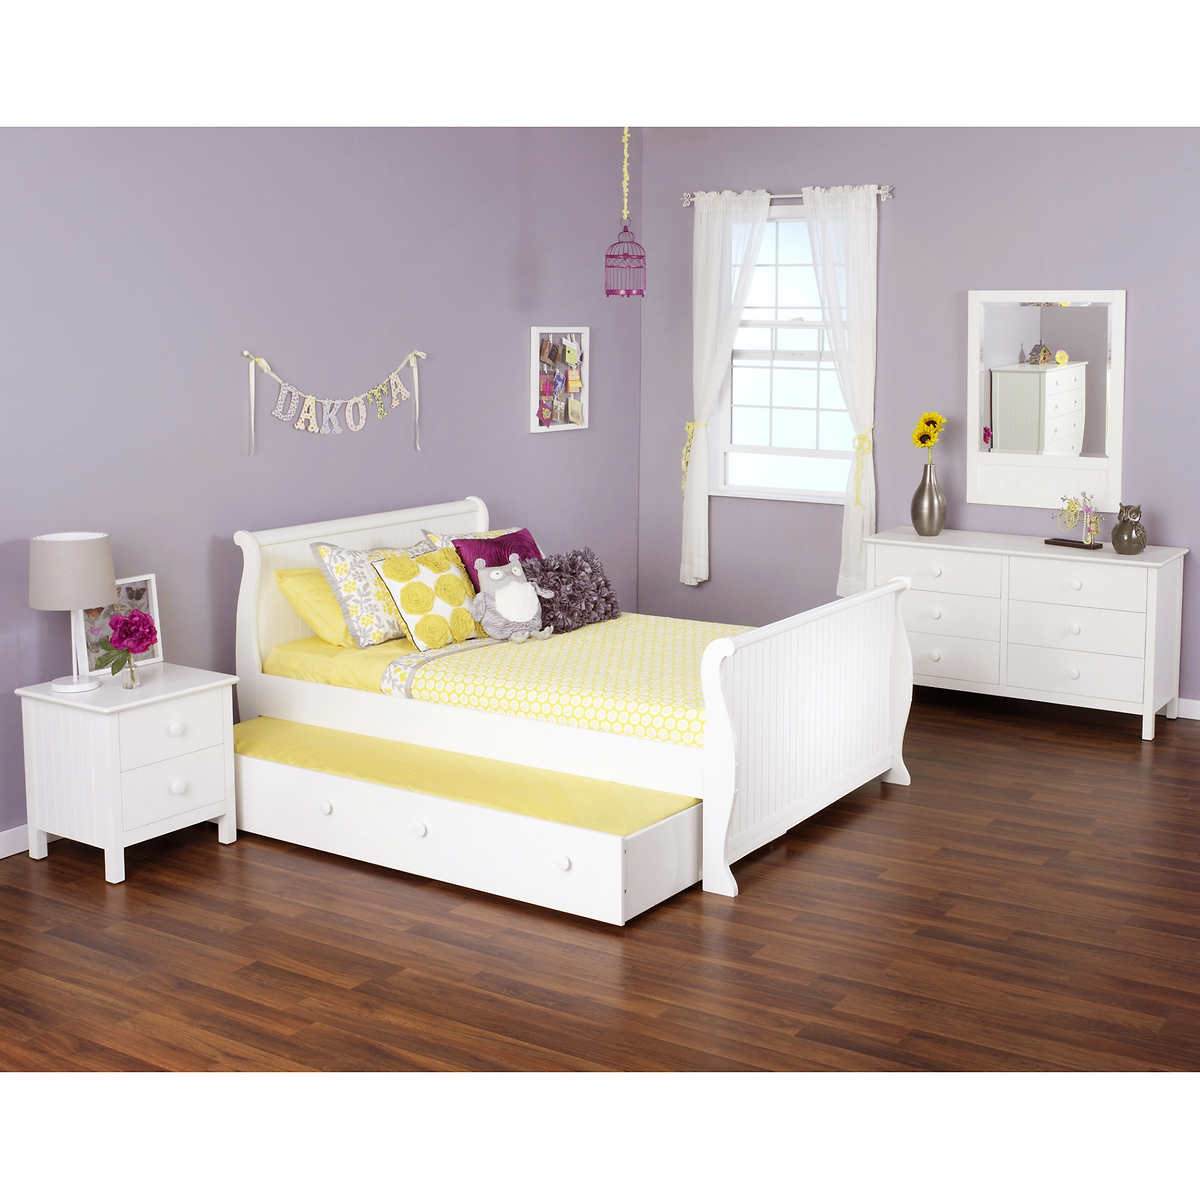 Olivia 4 Piece Full Sleigh Bed With Trundle Bed Set